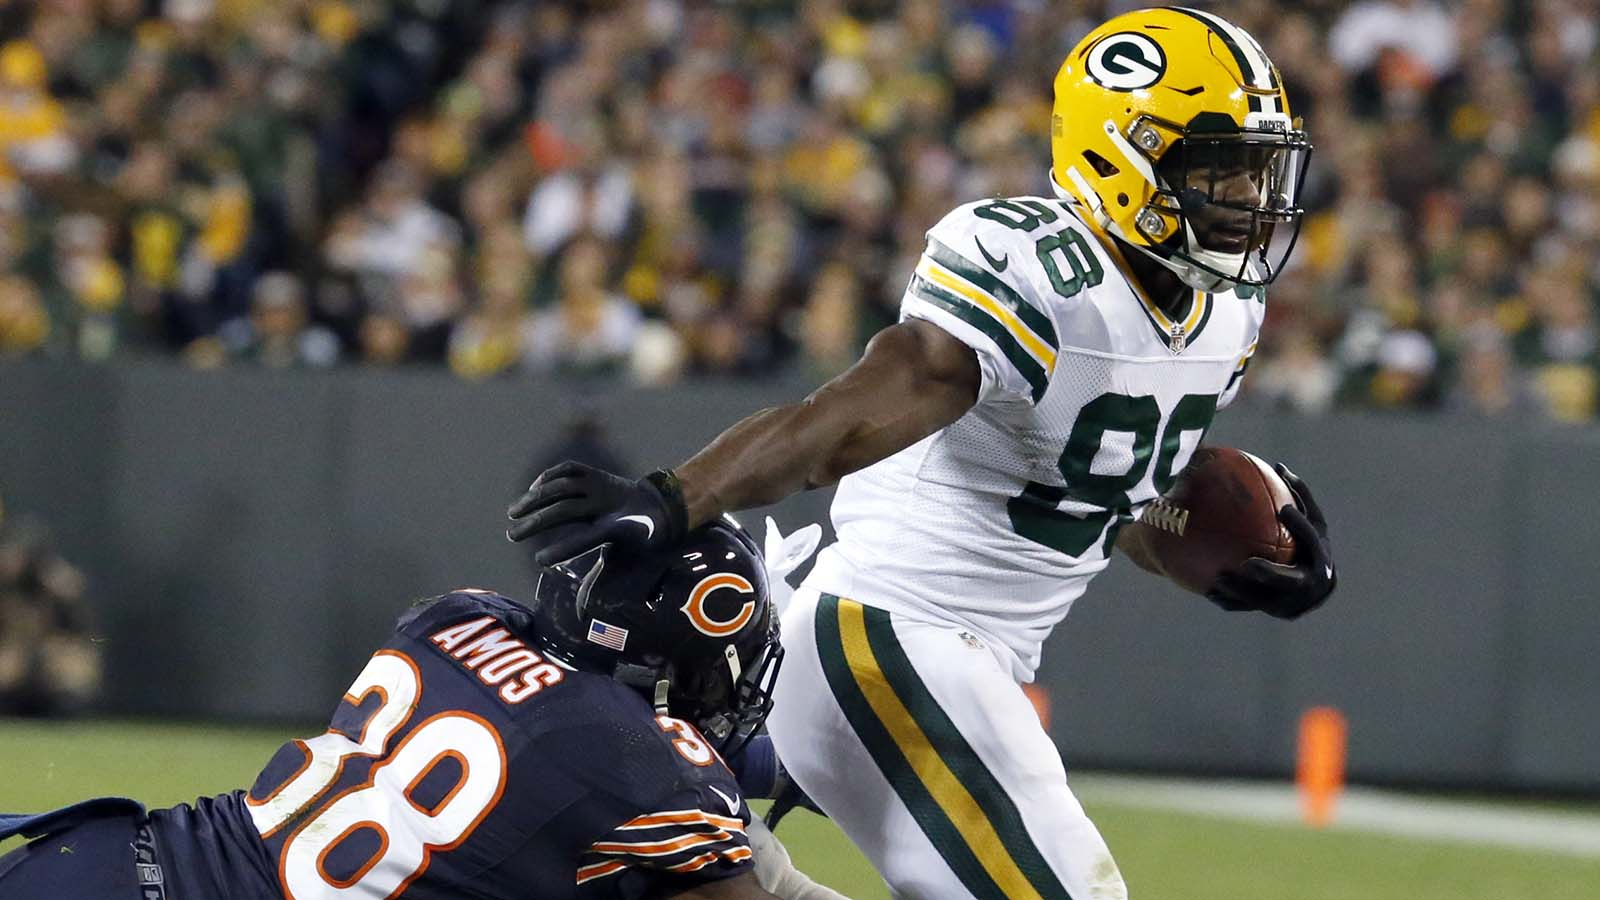 Packers snap counts: Making do without any running backs